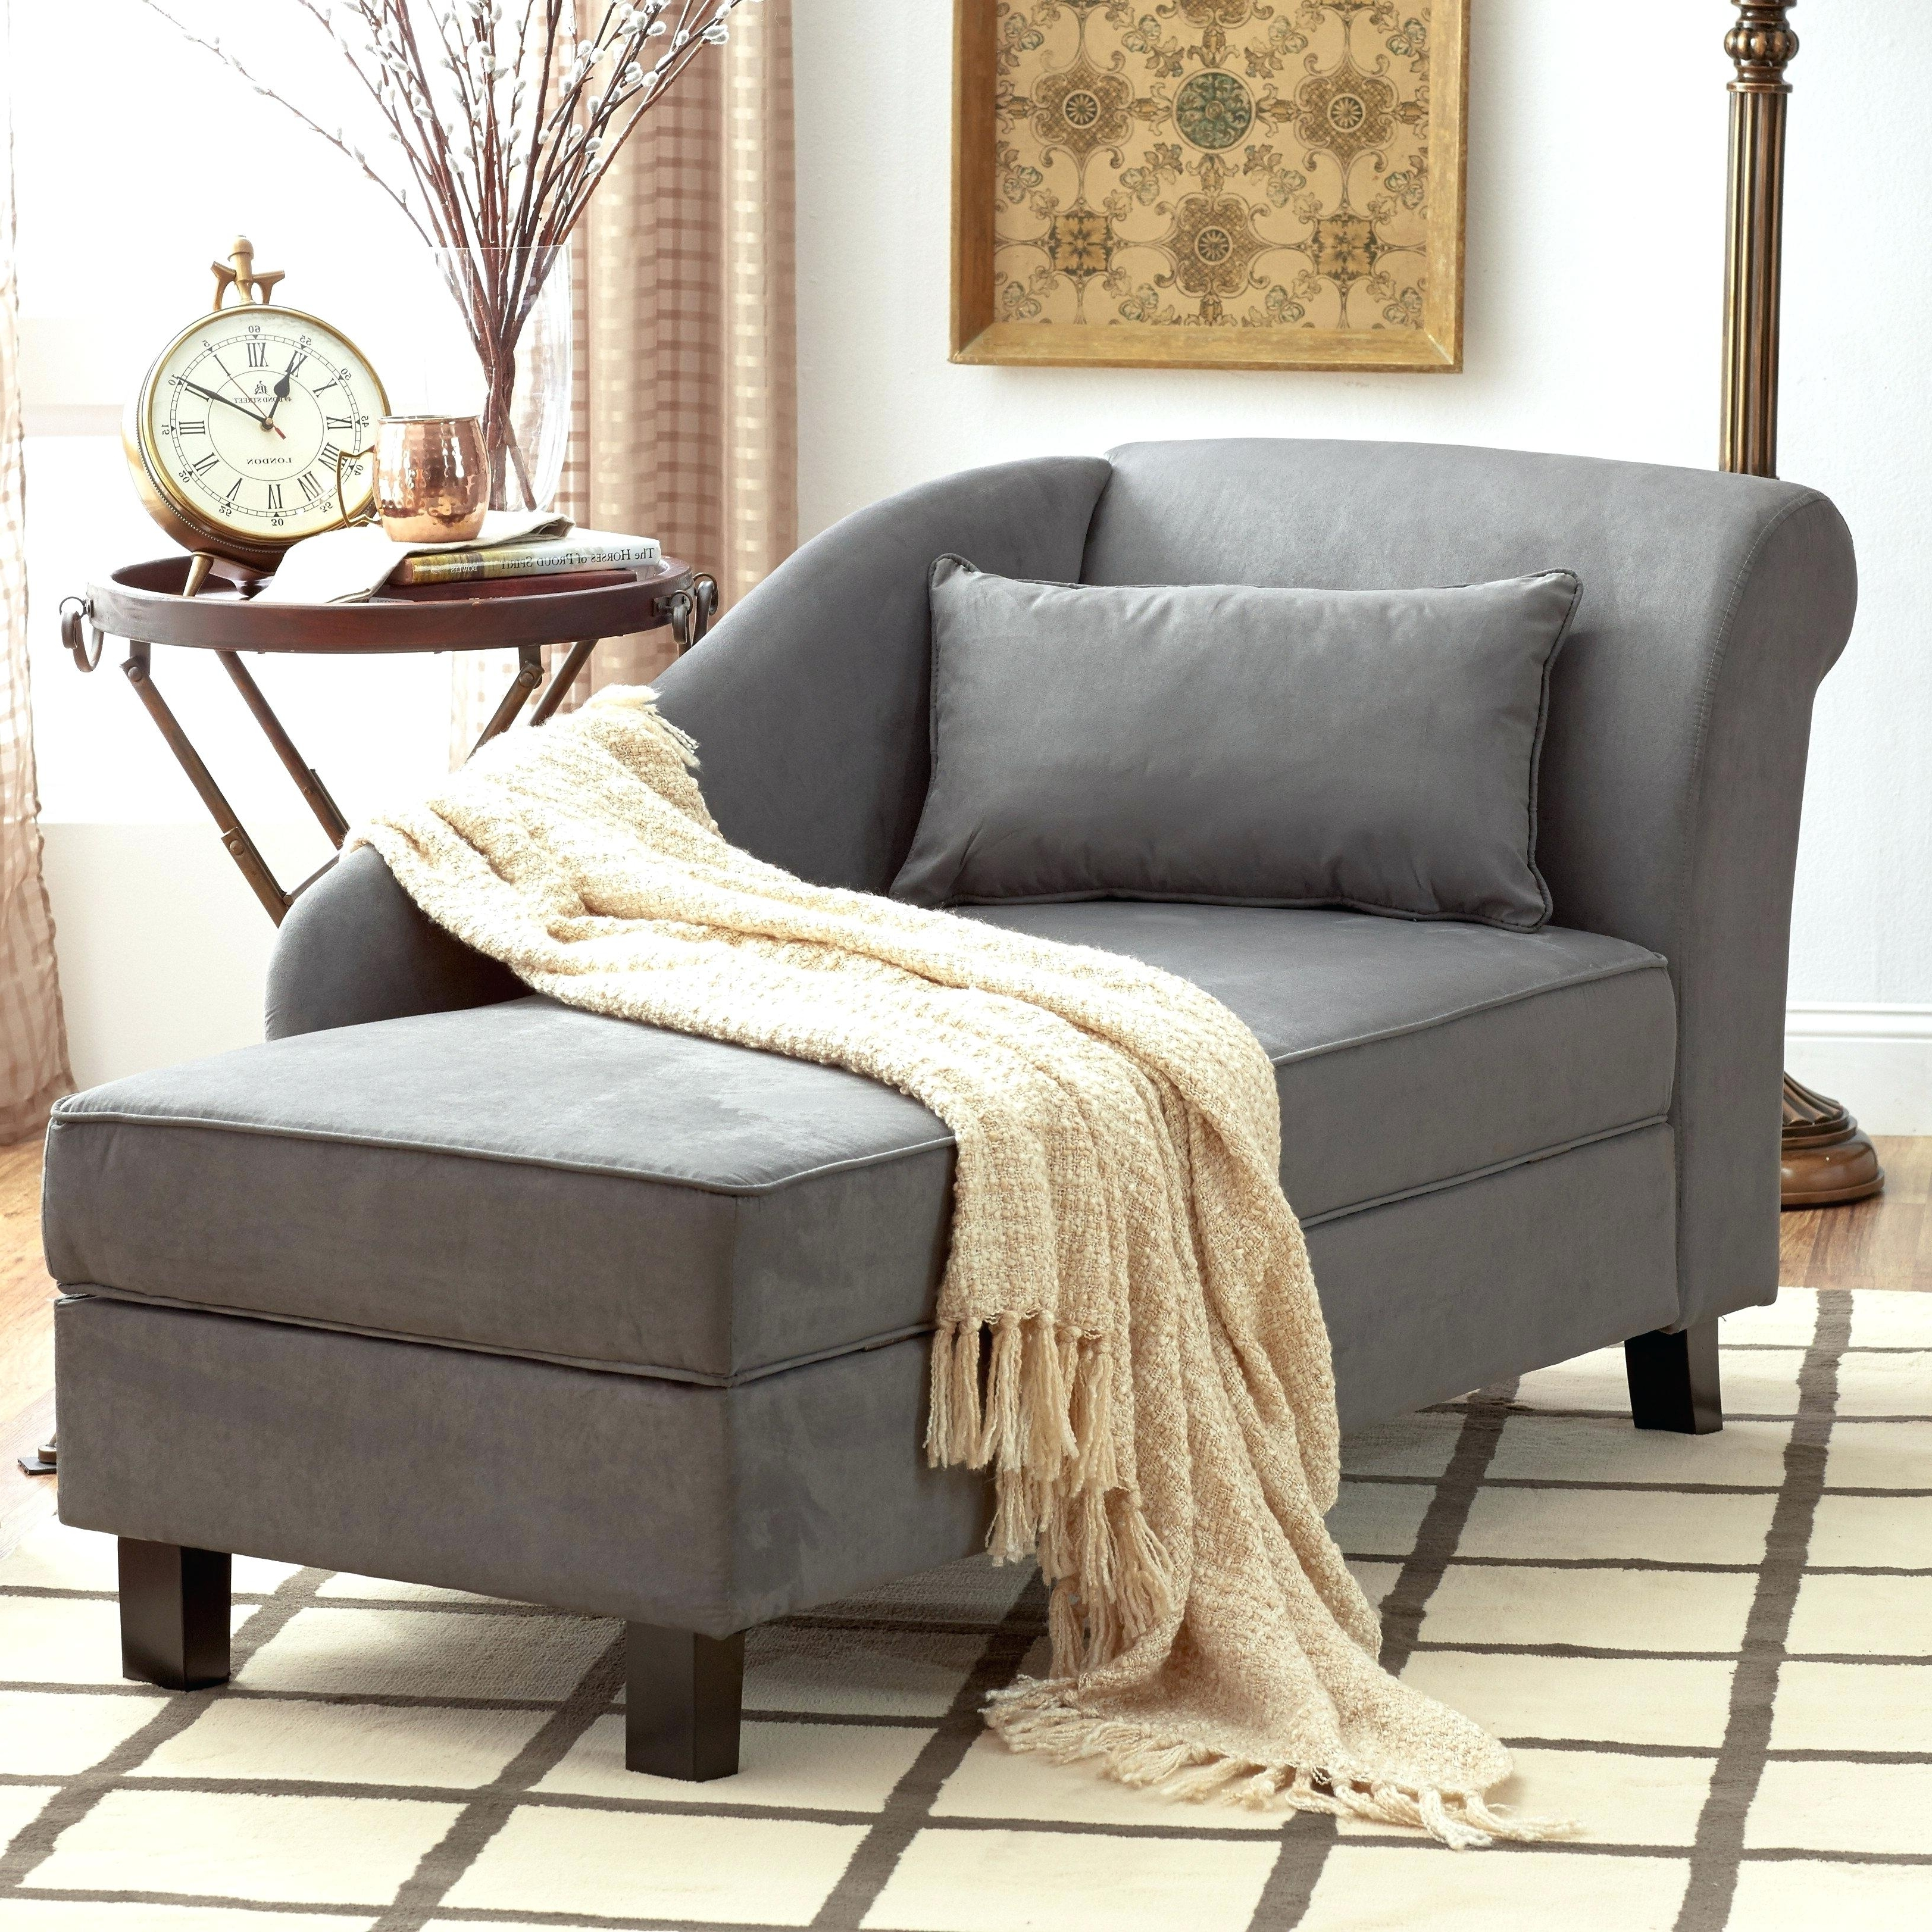 Indoor Chaise Lounge Slipcovers With Best And Newest Chaise Lounge With Arms S Chair Slipcover No Indoor – Province De (View 9 of 15)